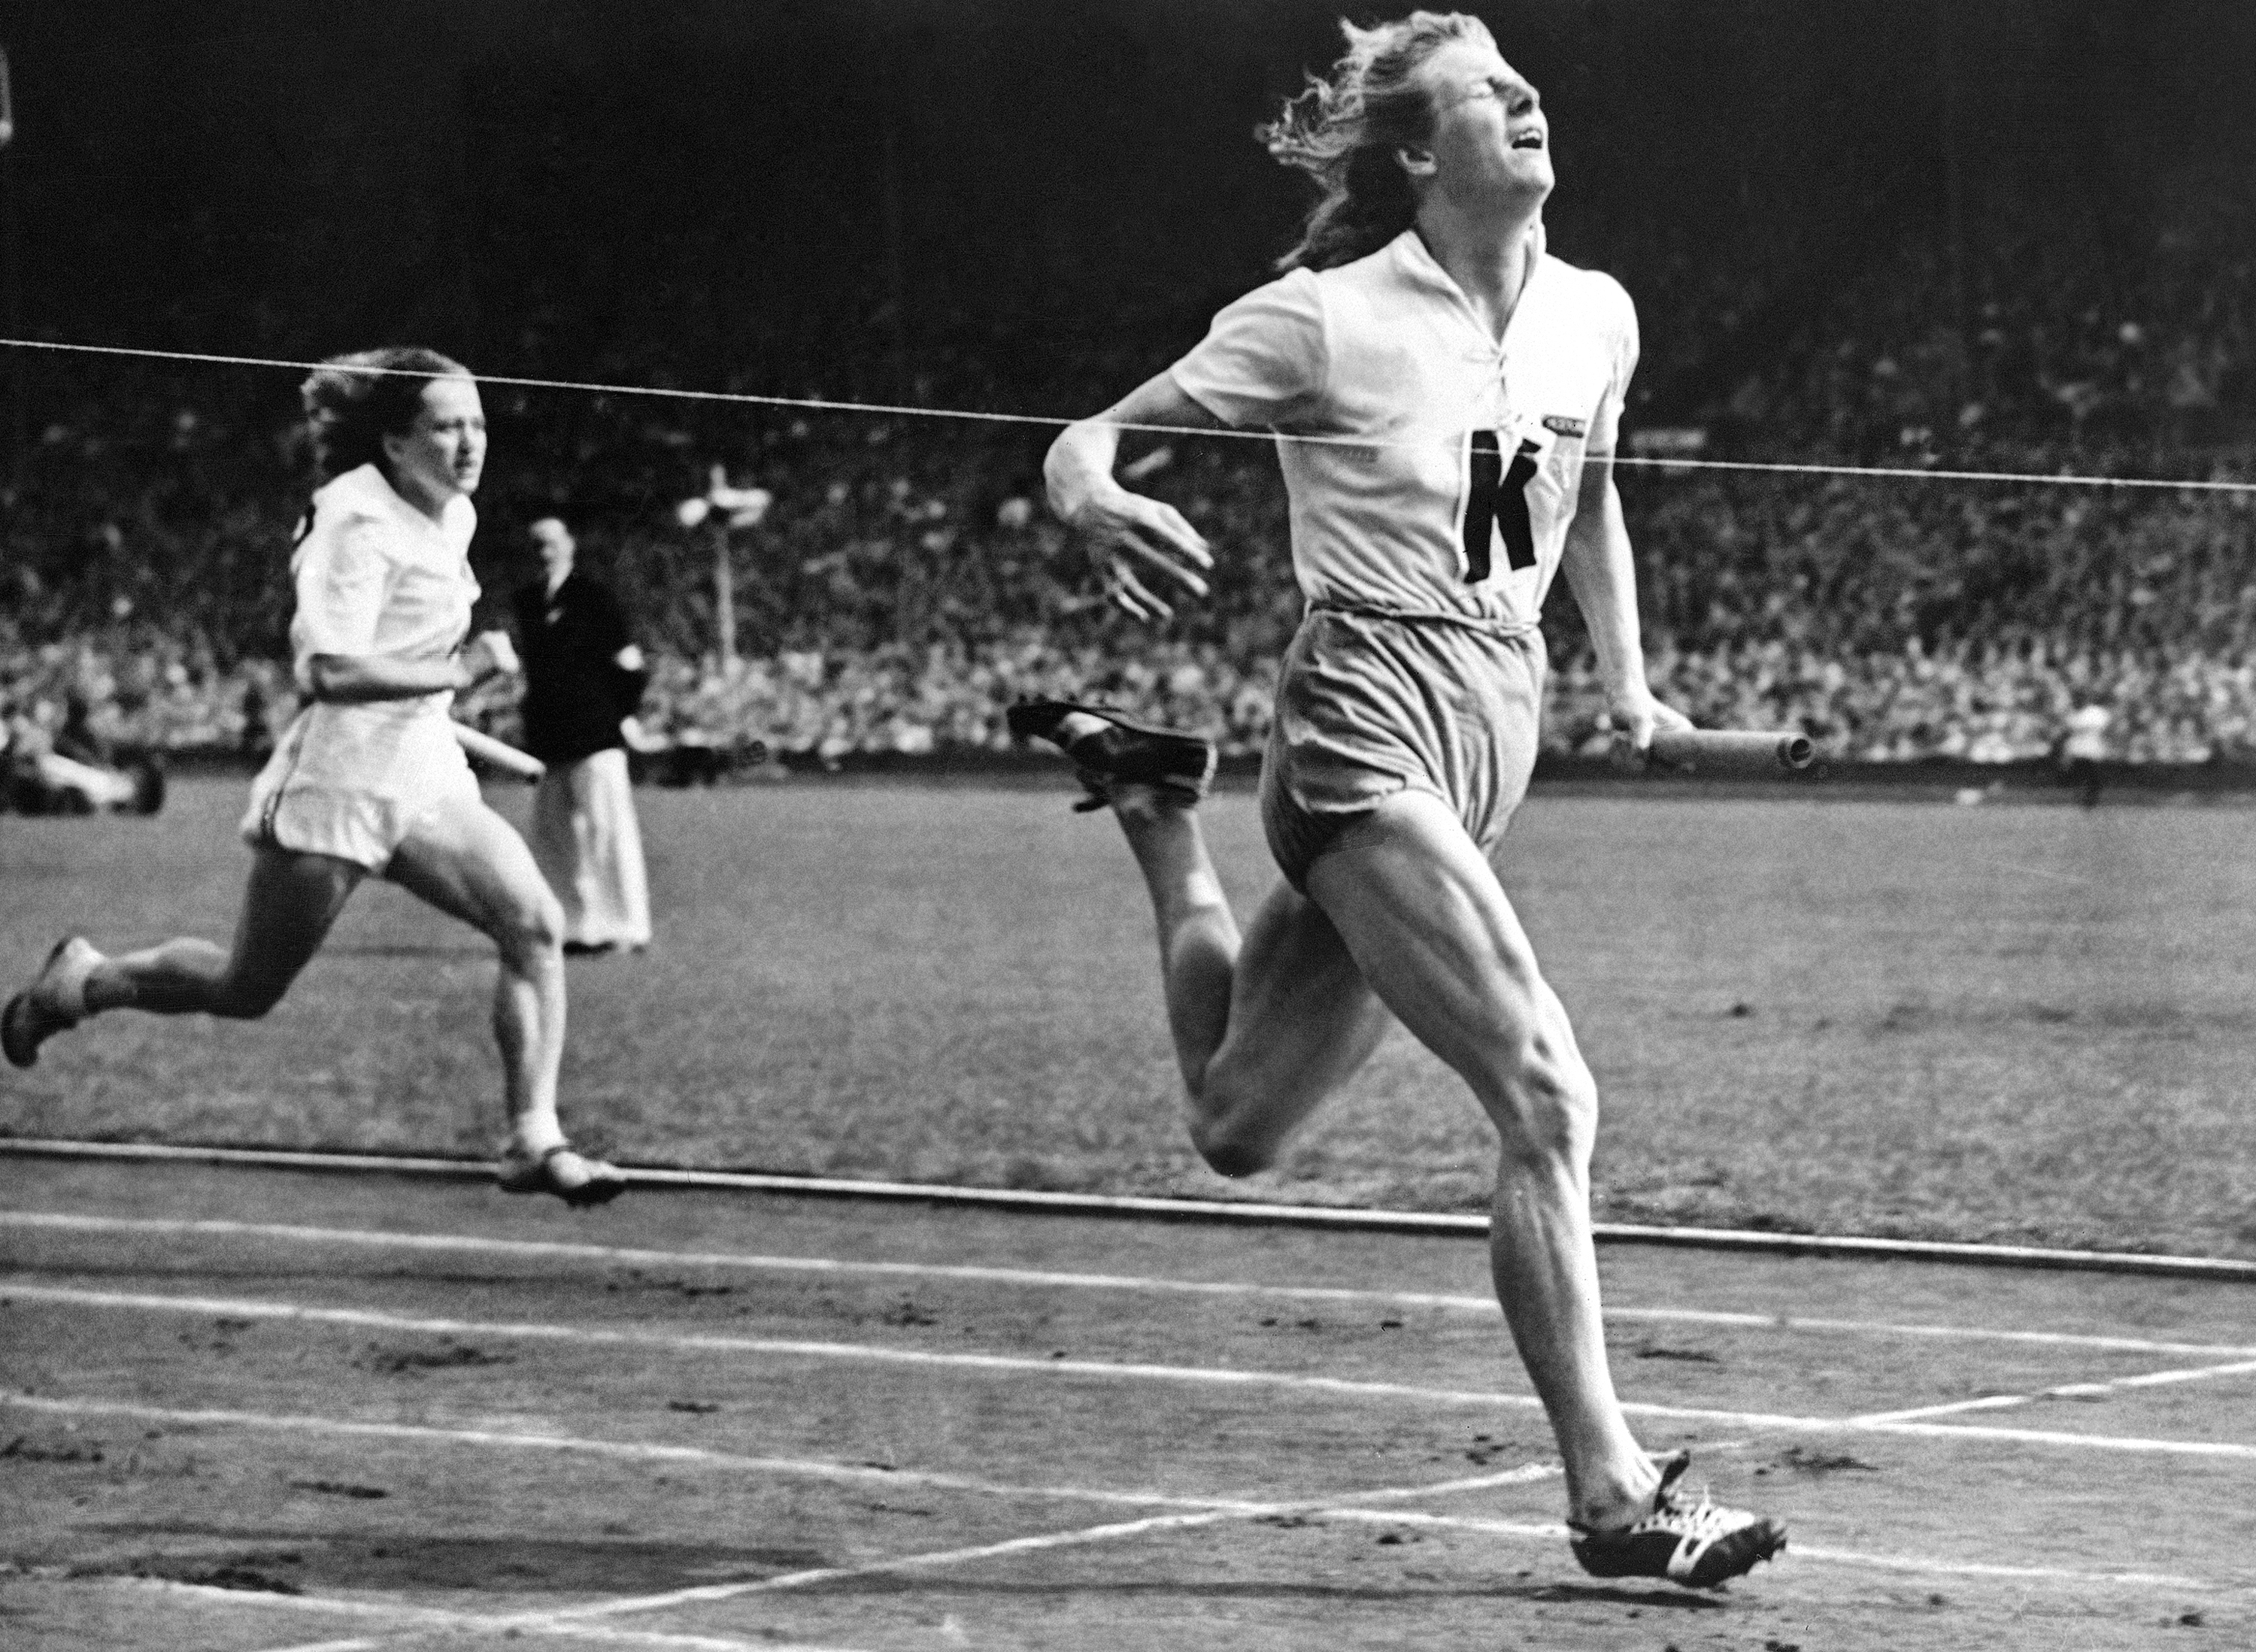 'Athlete of the Century' Fanny Blankers-Koen honored with Google Doodle